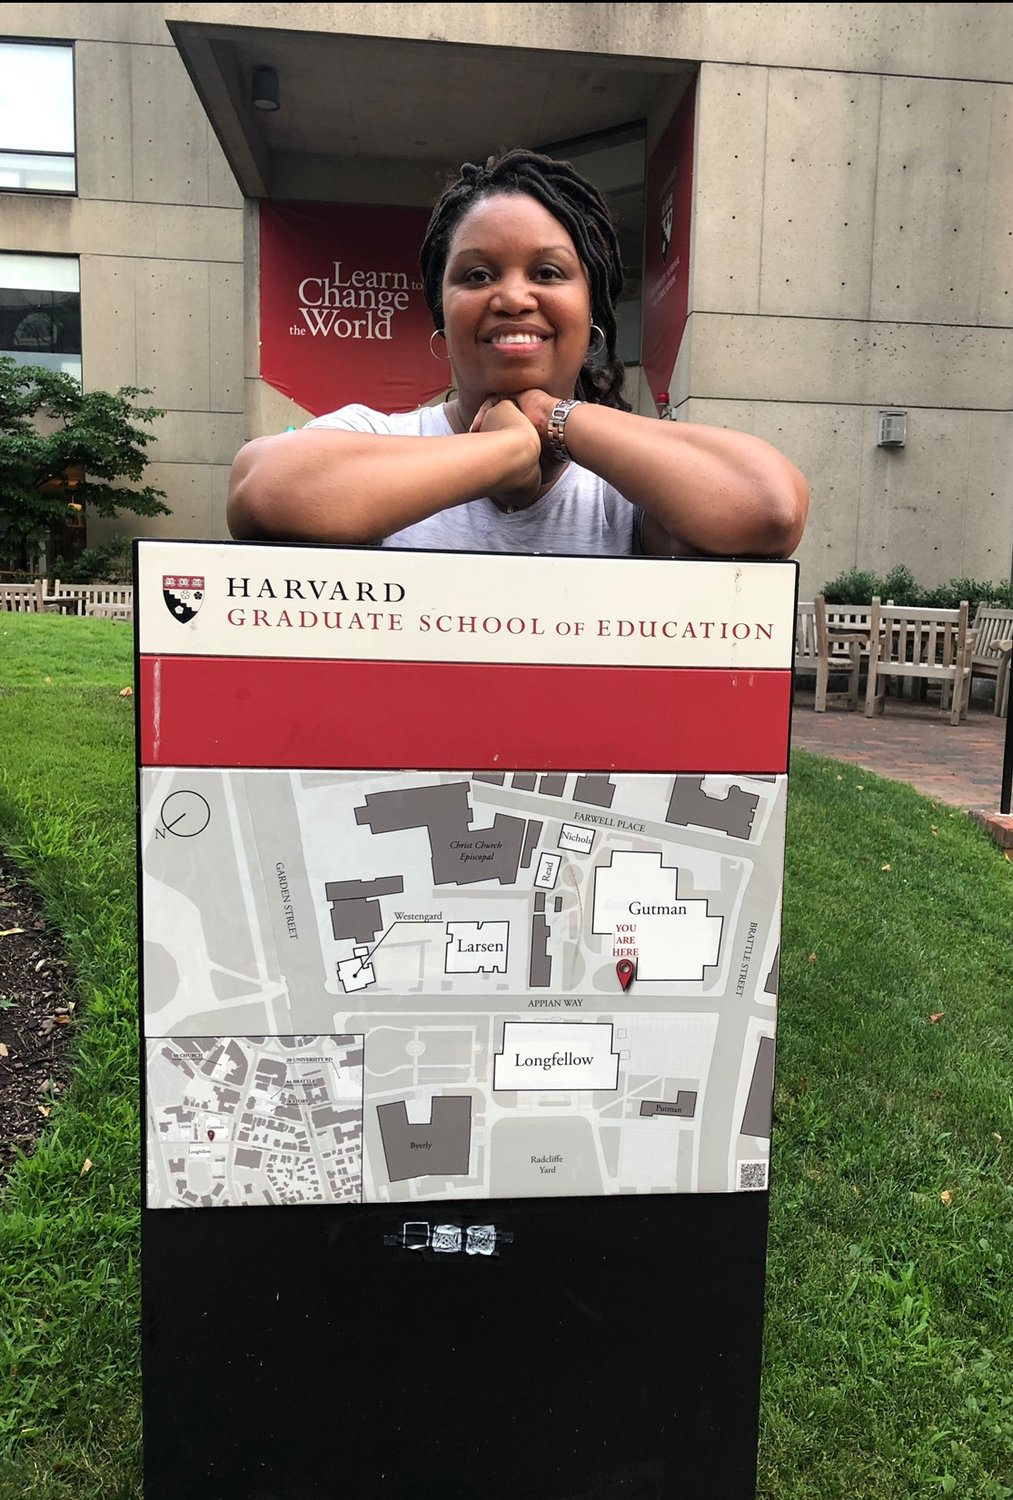 Cartersville Elementary Principal Melissa Bates was one of four Georgia educators chosen for Leadership Evolving Vision/LEV at the Harvard Graduate School of Education in Boston July 7-13.